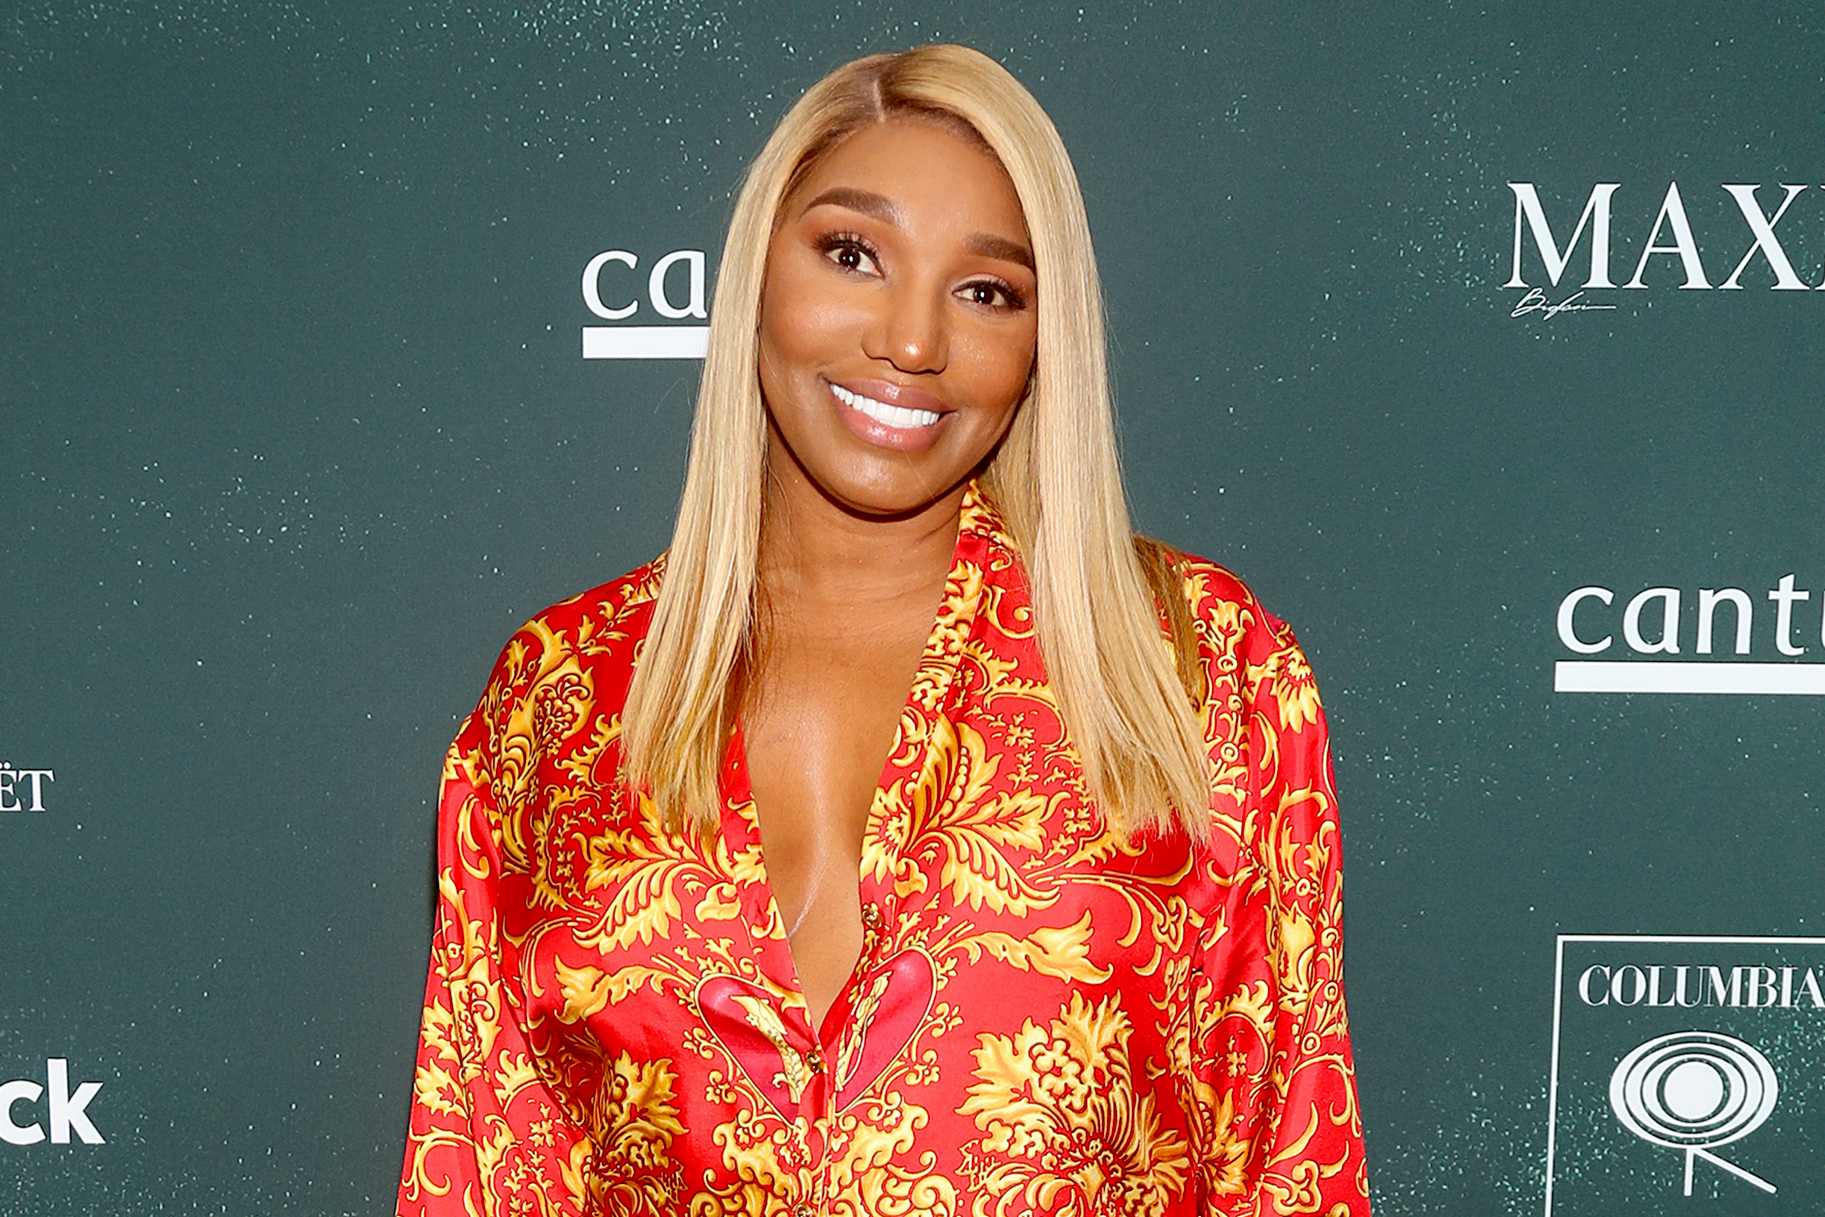 nene-leakes-cannot-be-silenced-see-her-message-here